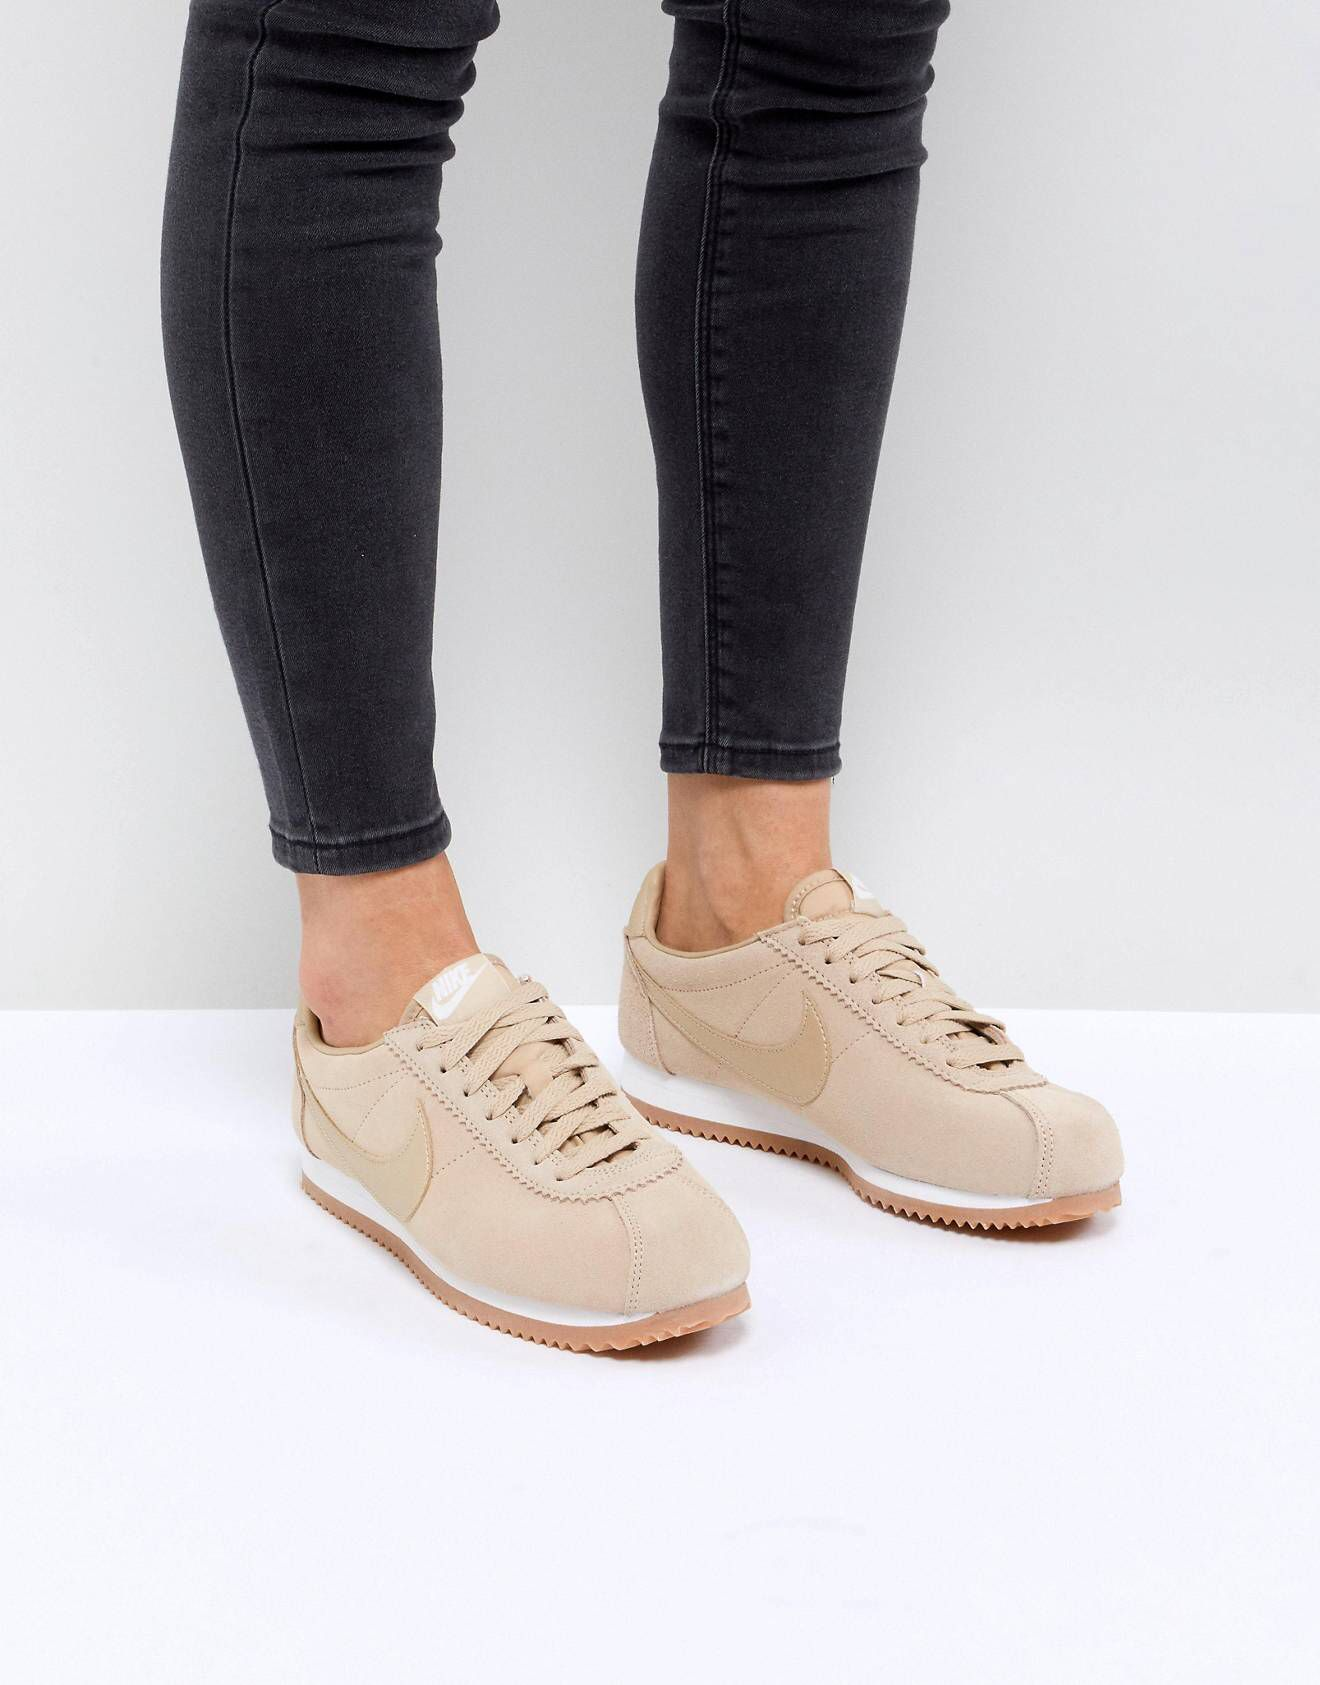 Nike Classic Cortez Sneakers In Mushroom Suede With Gum Sole  5a0894847